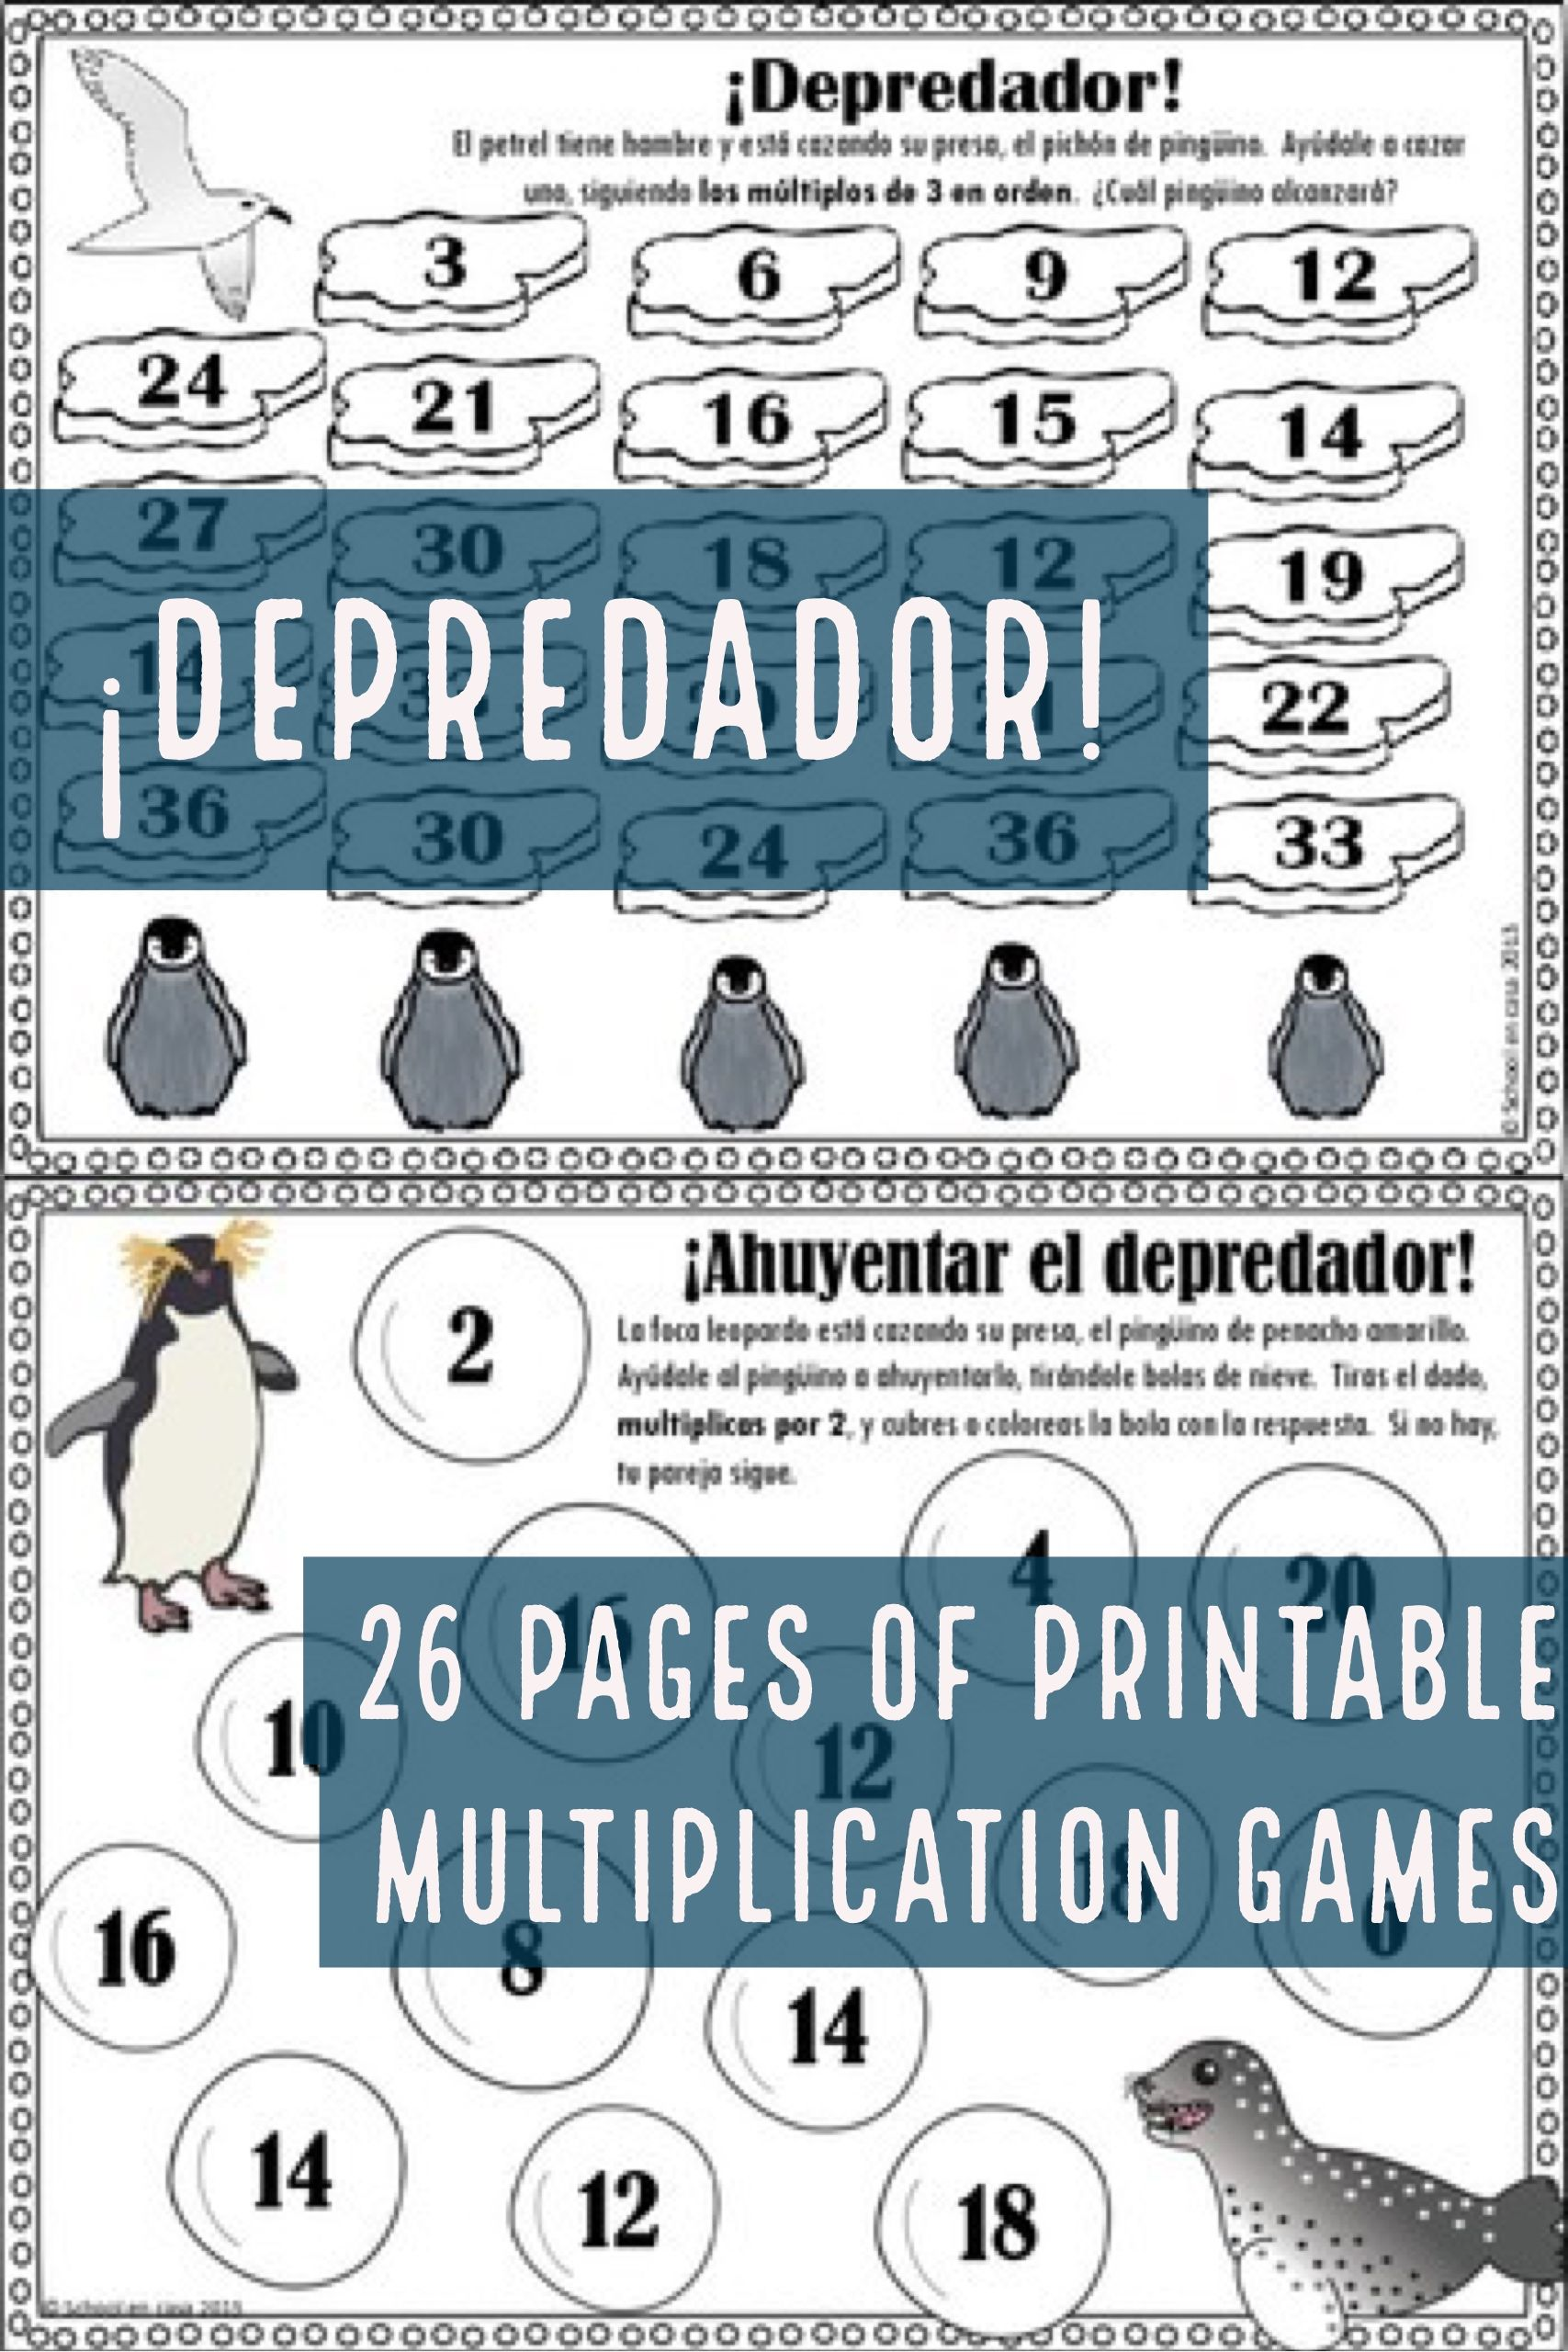 Printable Multiplication Games in Spanish: ¡Depredador! Antártica ...